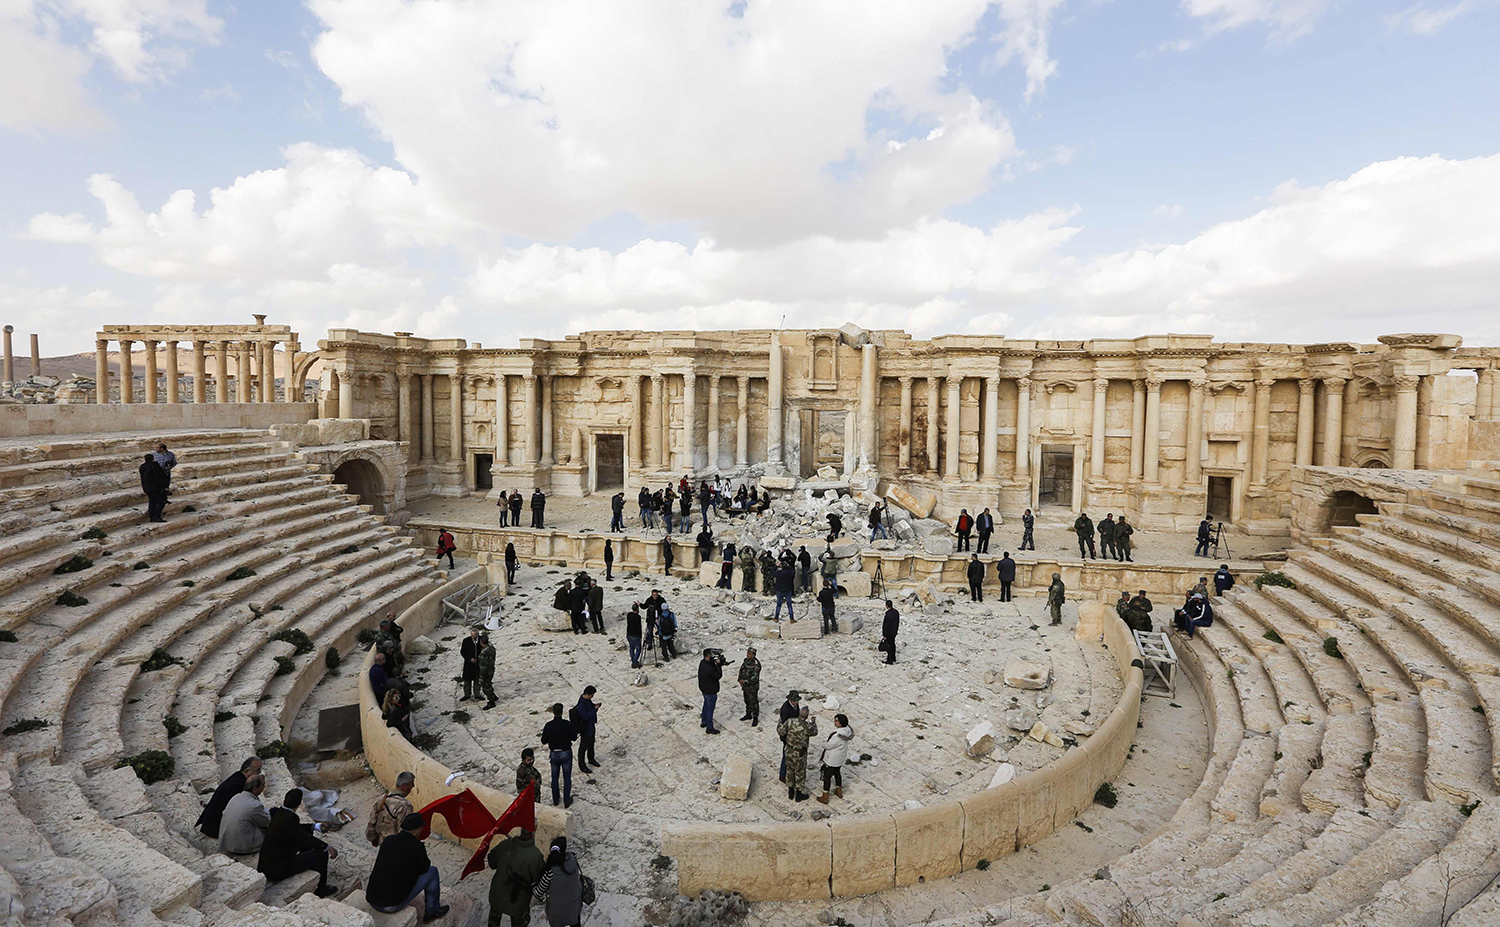 TOPSHOT - A picture taken on March 4, 2017 shows journalists at the site of the damaged Roman amphitheatre in the ancient city of Palmyra in central Syria, as part of a tour organised by the Syrian army. Syrian troops backed by Russian jets completed the recapture of the historic city of Palmyra from Islamic State (IS) group fighters on March 2, 2017, the Kremlin and the army said. / AFP PHOTO / Louai Beshara / TT / kod 444